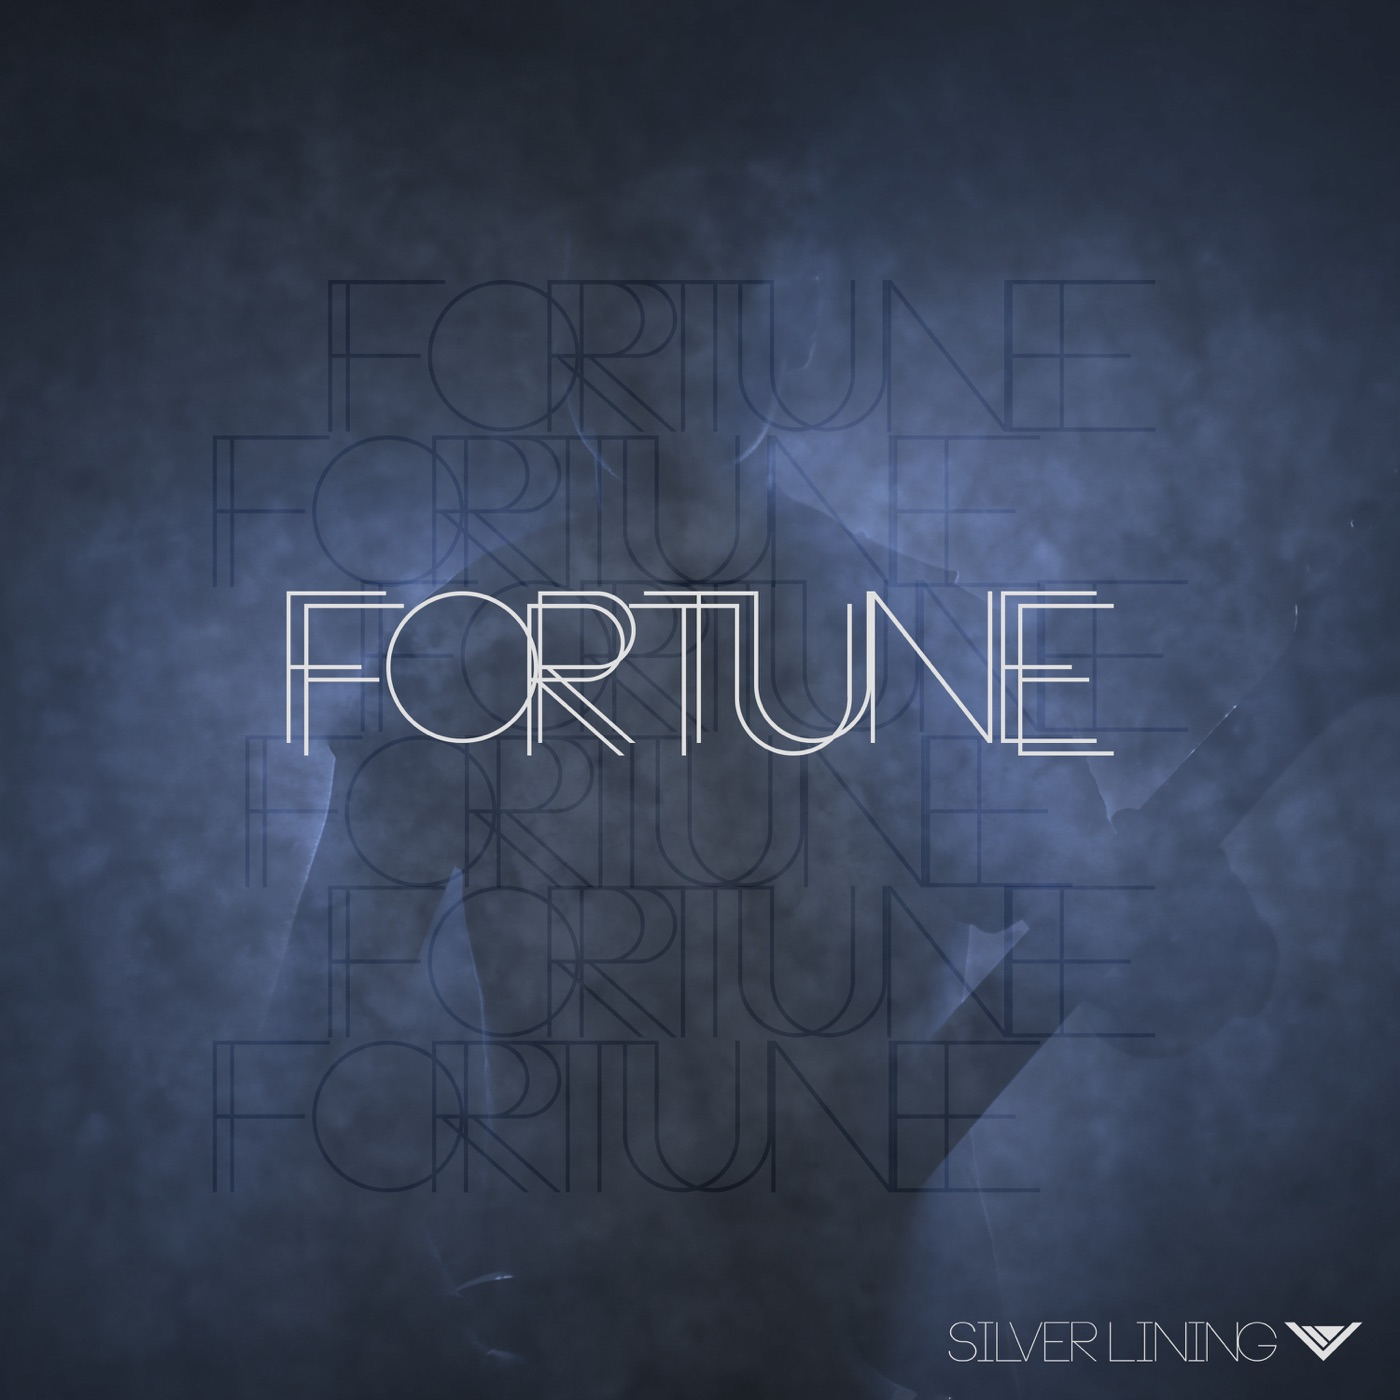 A Silver Lining - Fortune [single] (2017)